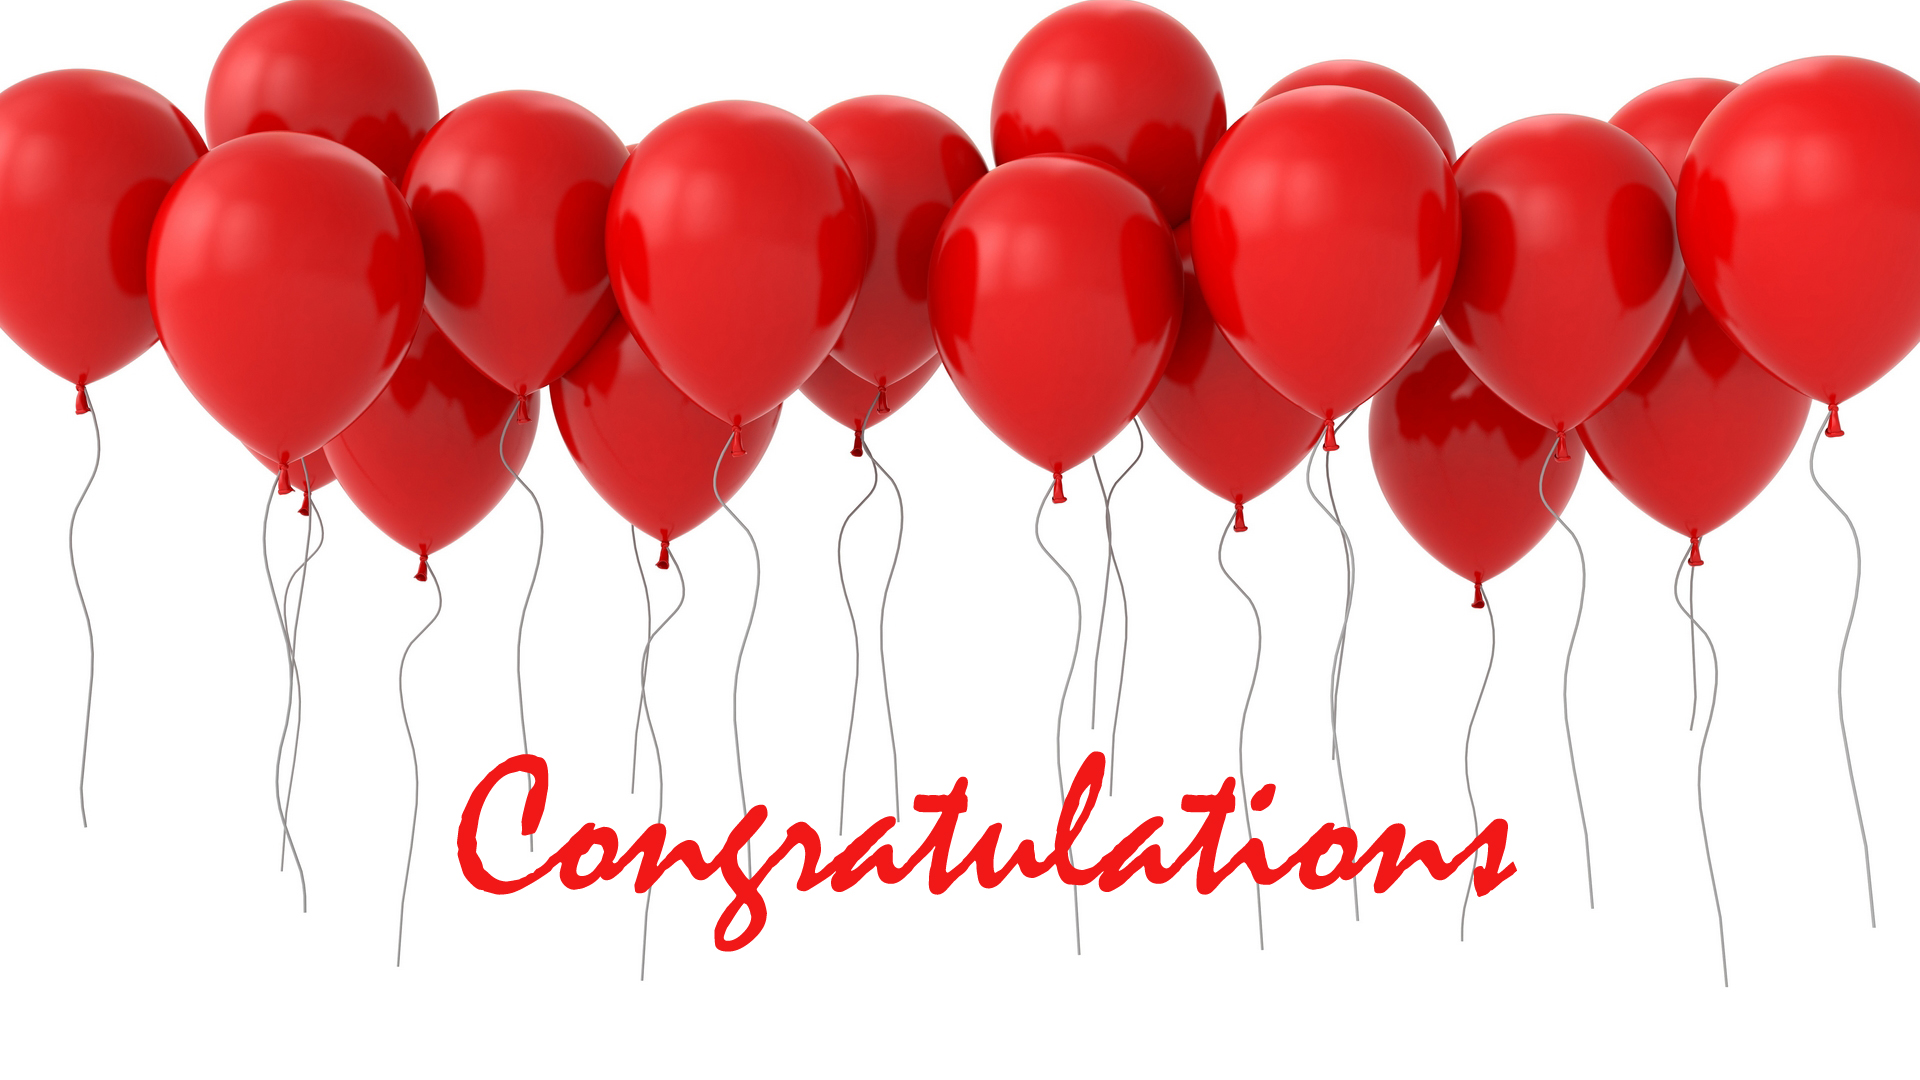 Congratulation Images Free With Balloons Hd Wallpapers